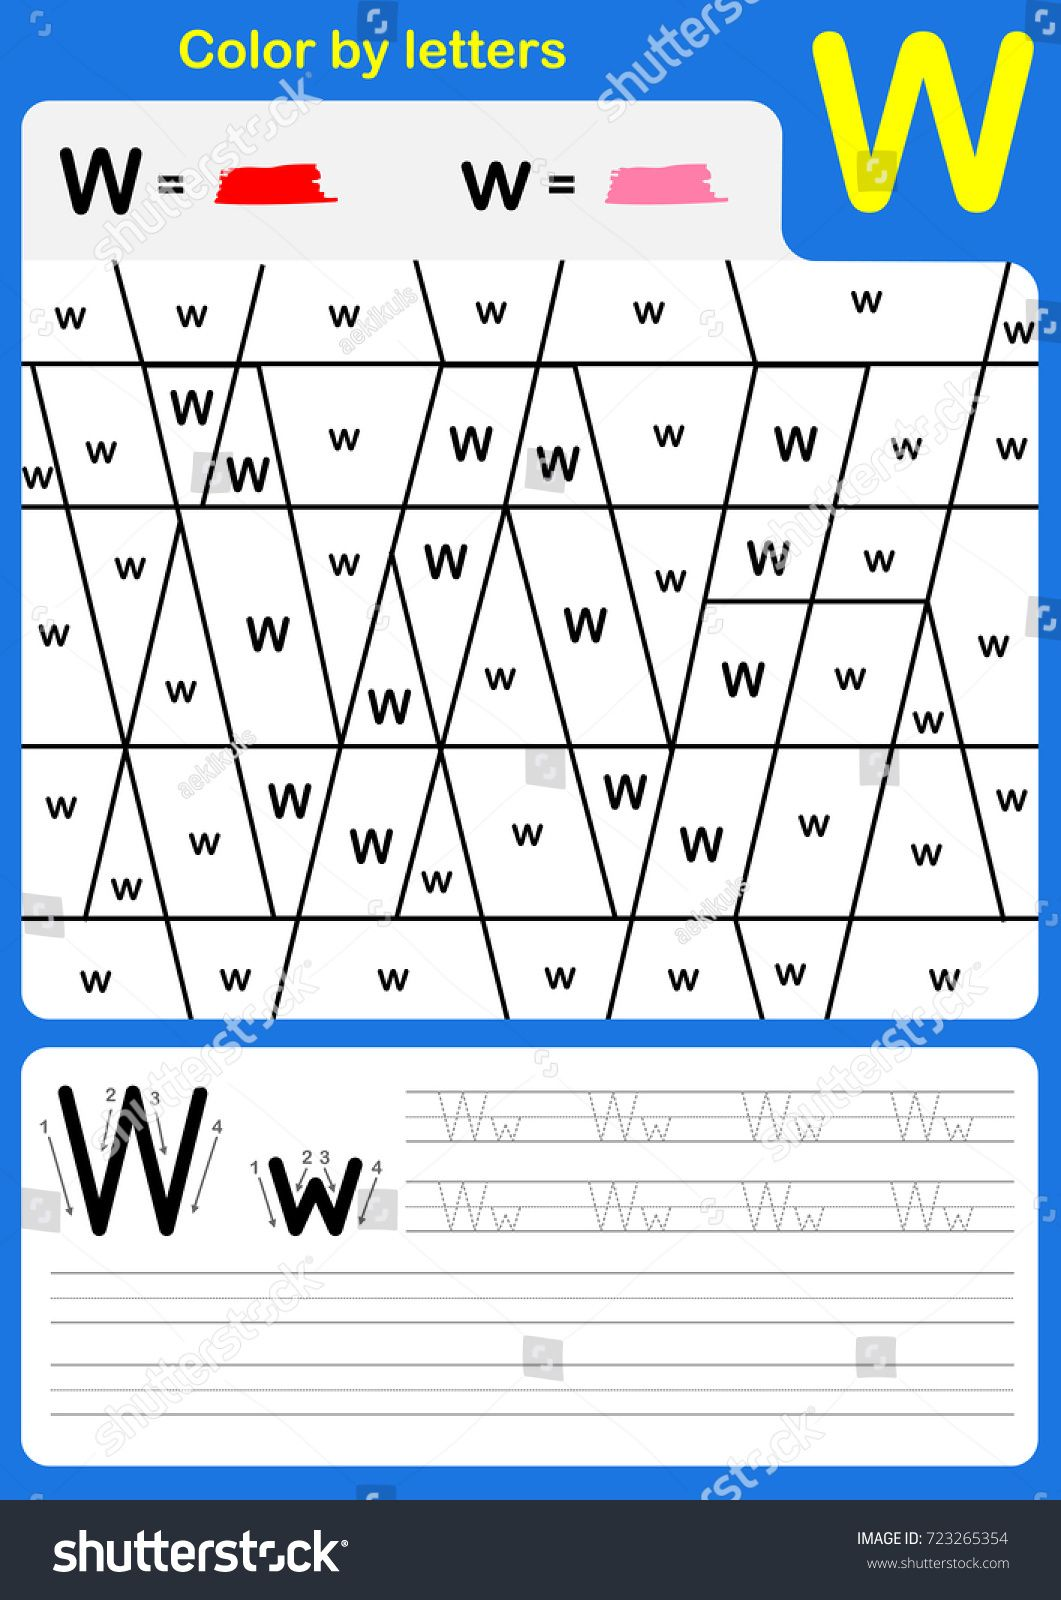 Color By Letter Alphabet Worksheet Color And Writing A Z